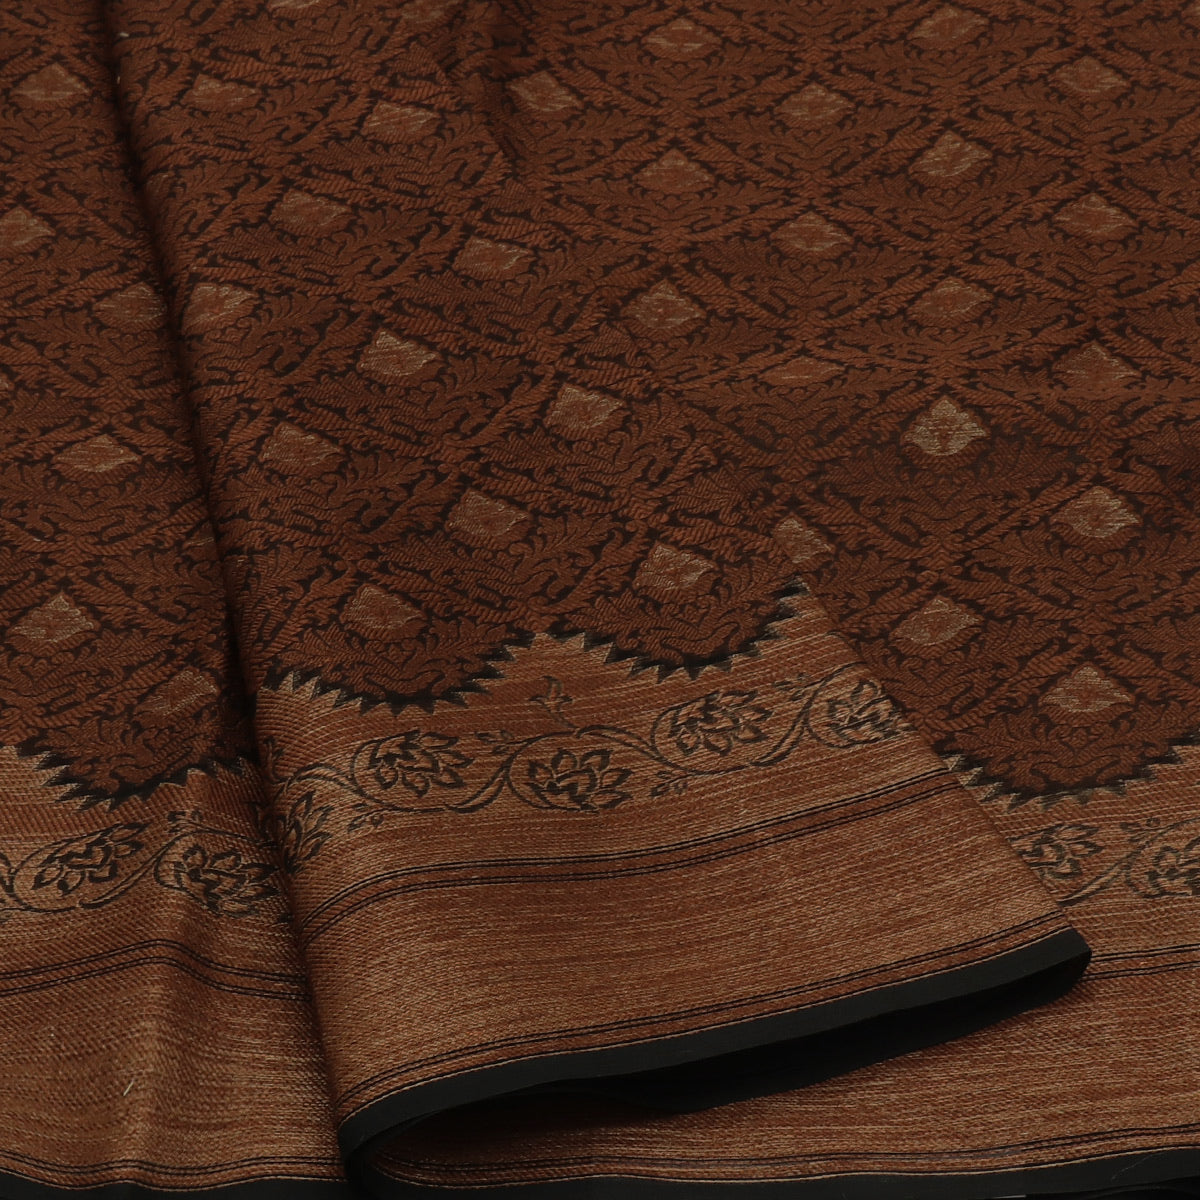 Banarasi Organza Saree Brown with Simple thread border